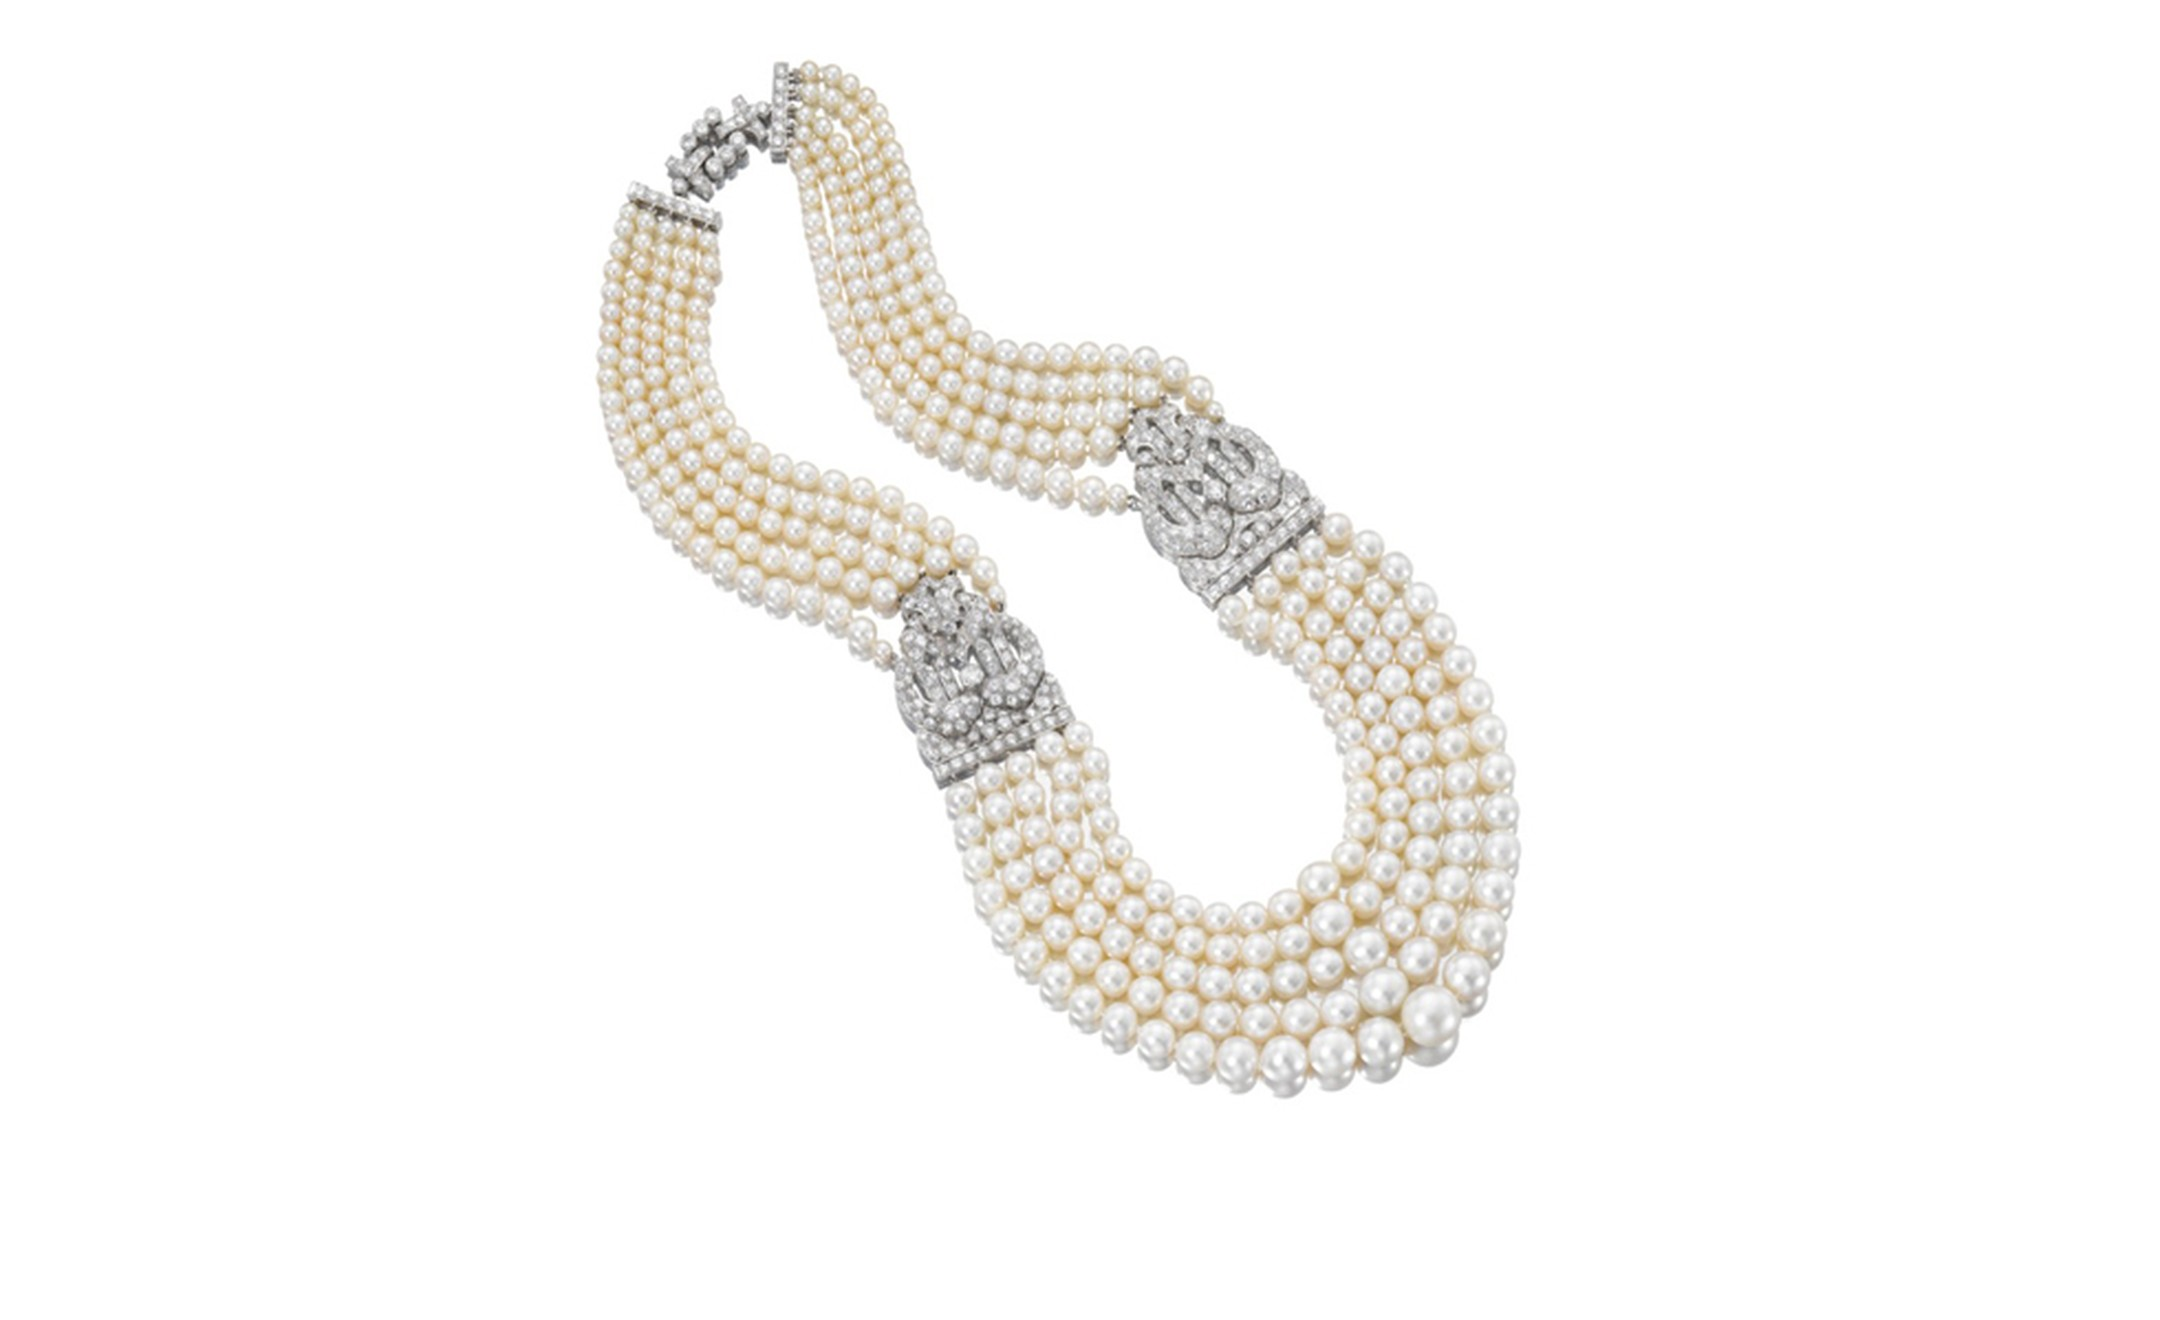 A very fine natural pearl and diamond necklace, Cartier, 1930s + reports. Estimate CHF 700'000 – 1'100'000/ US$ 775'000 – 1'240'000